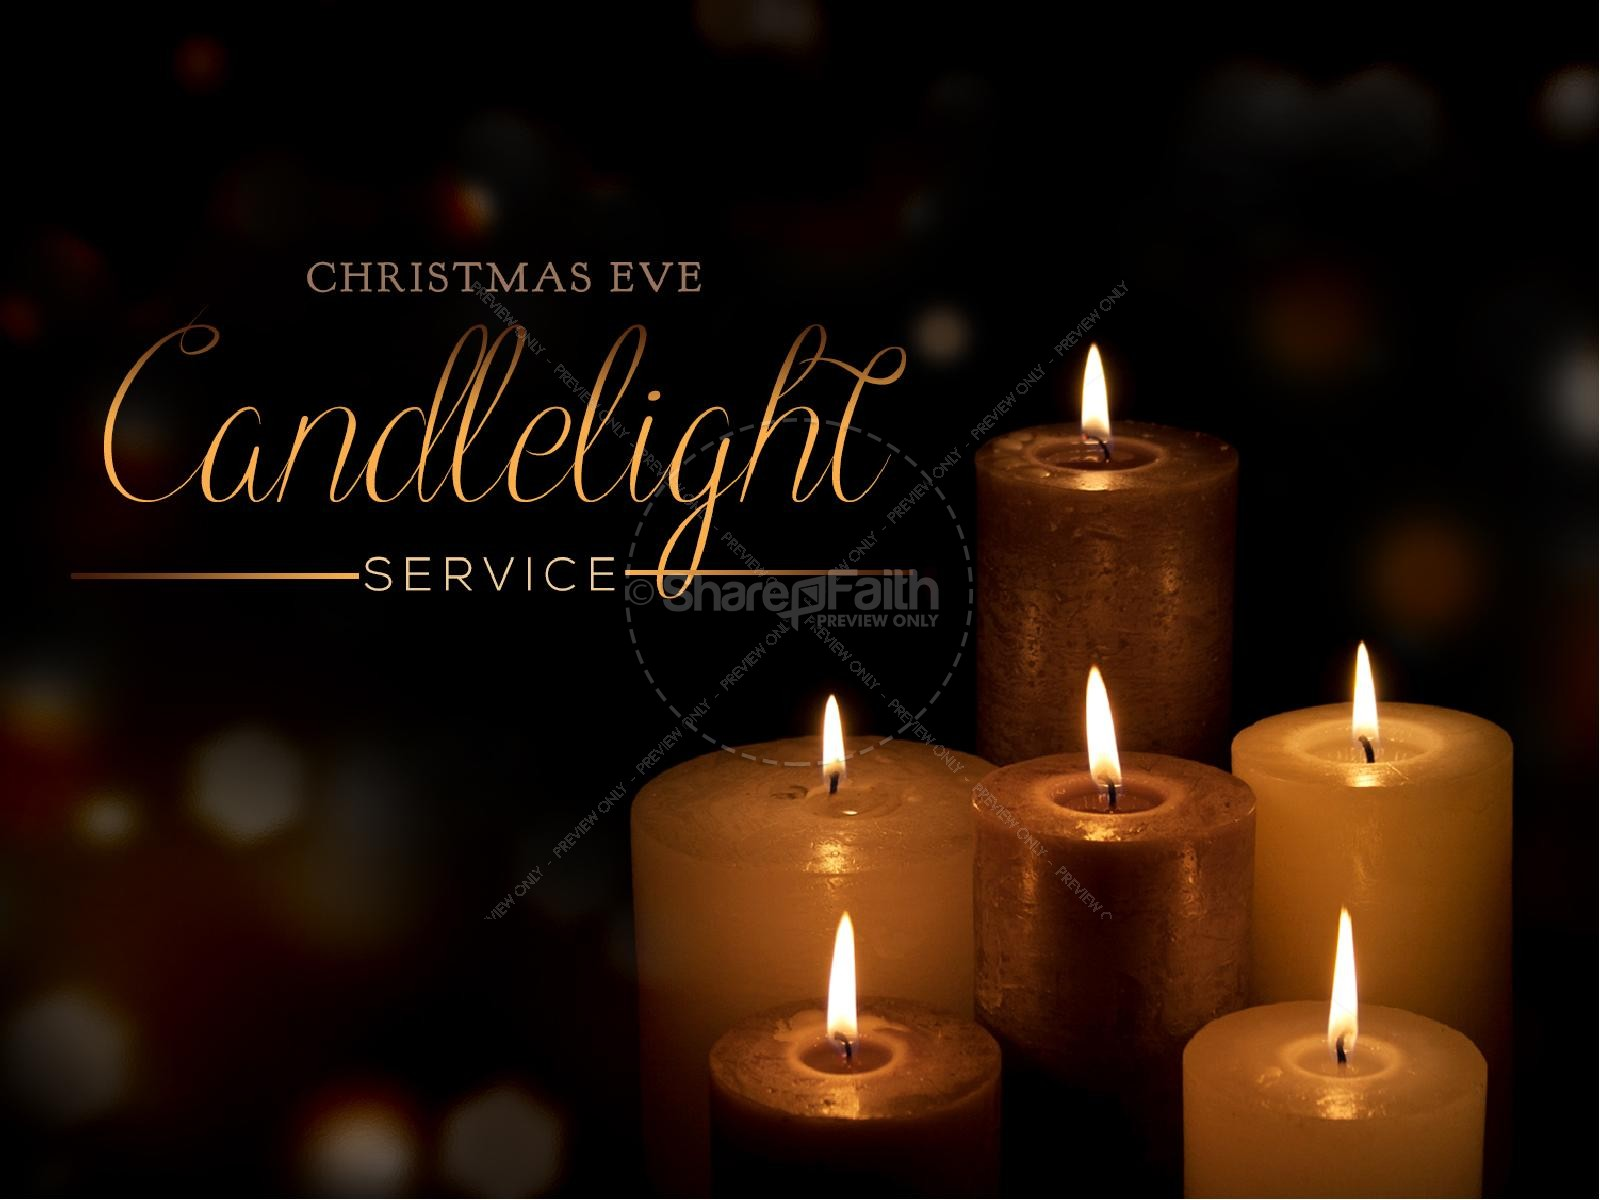 Christmas Eve Candlelight Service Clipart.